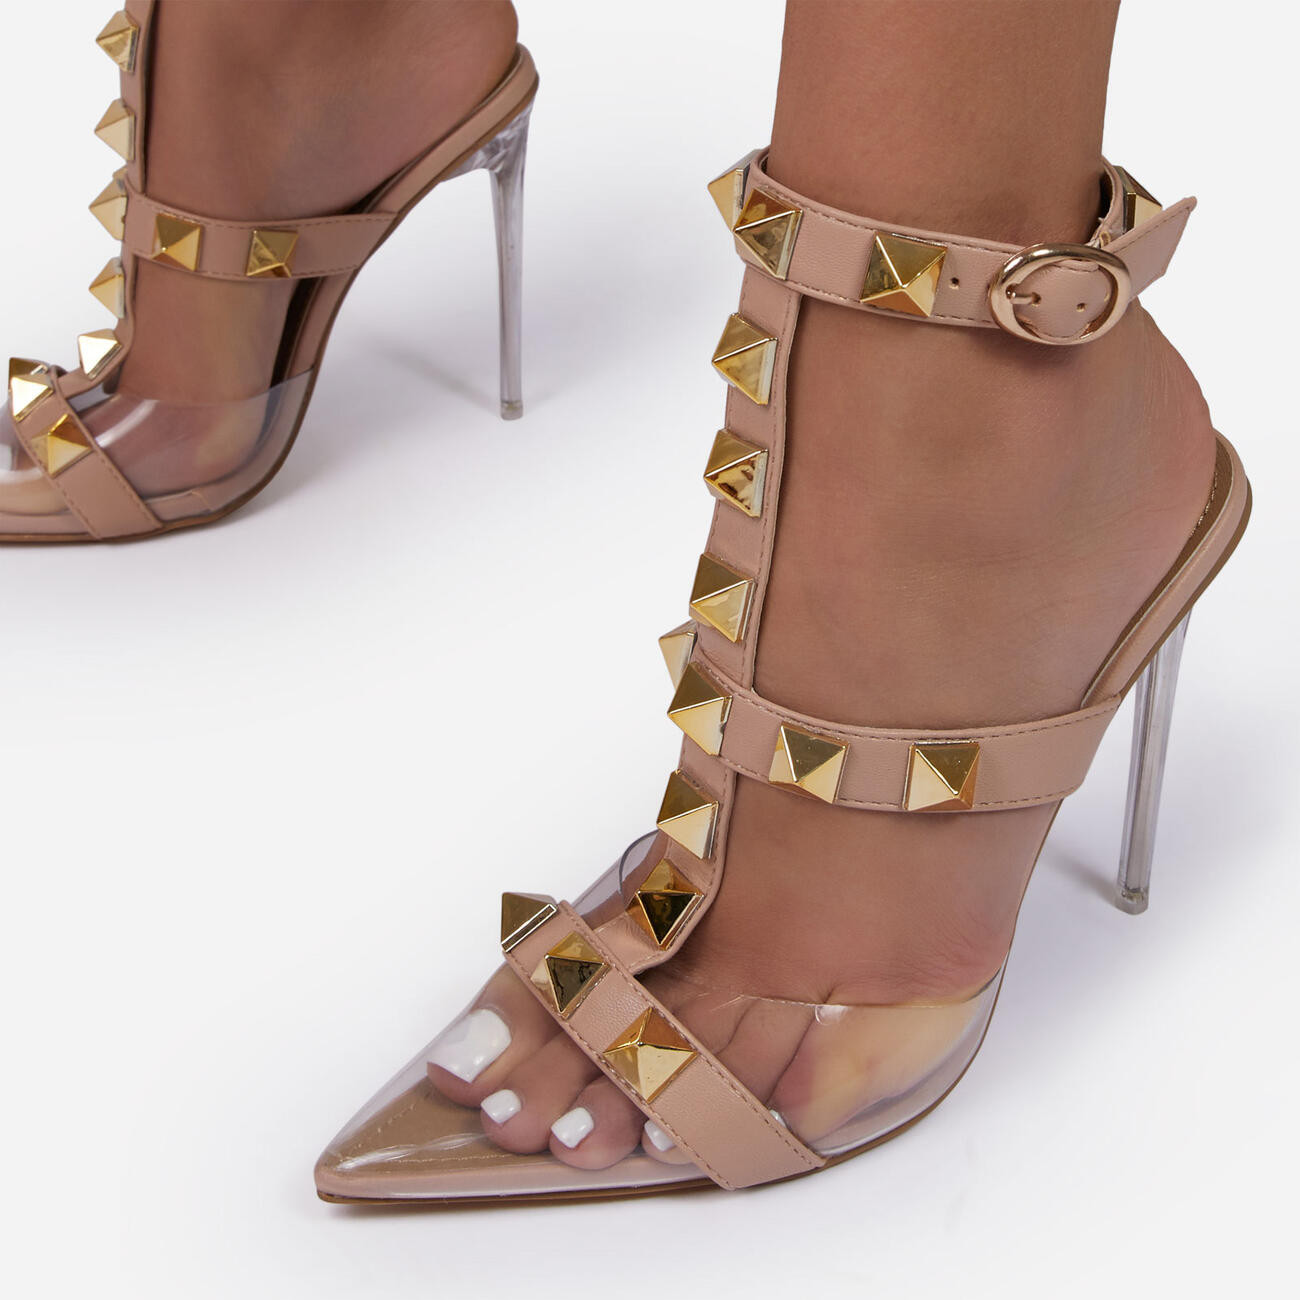 Grounded Studded Detail Pointed Clear Perspex Heel In Nude Faux Leather